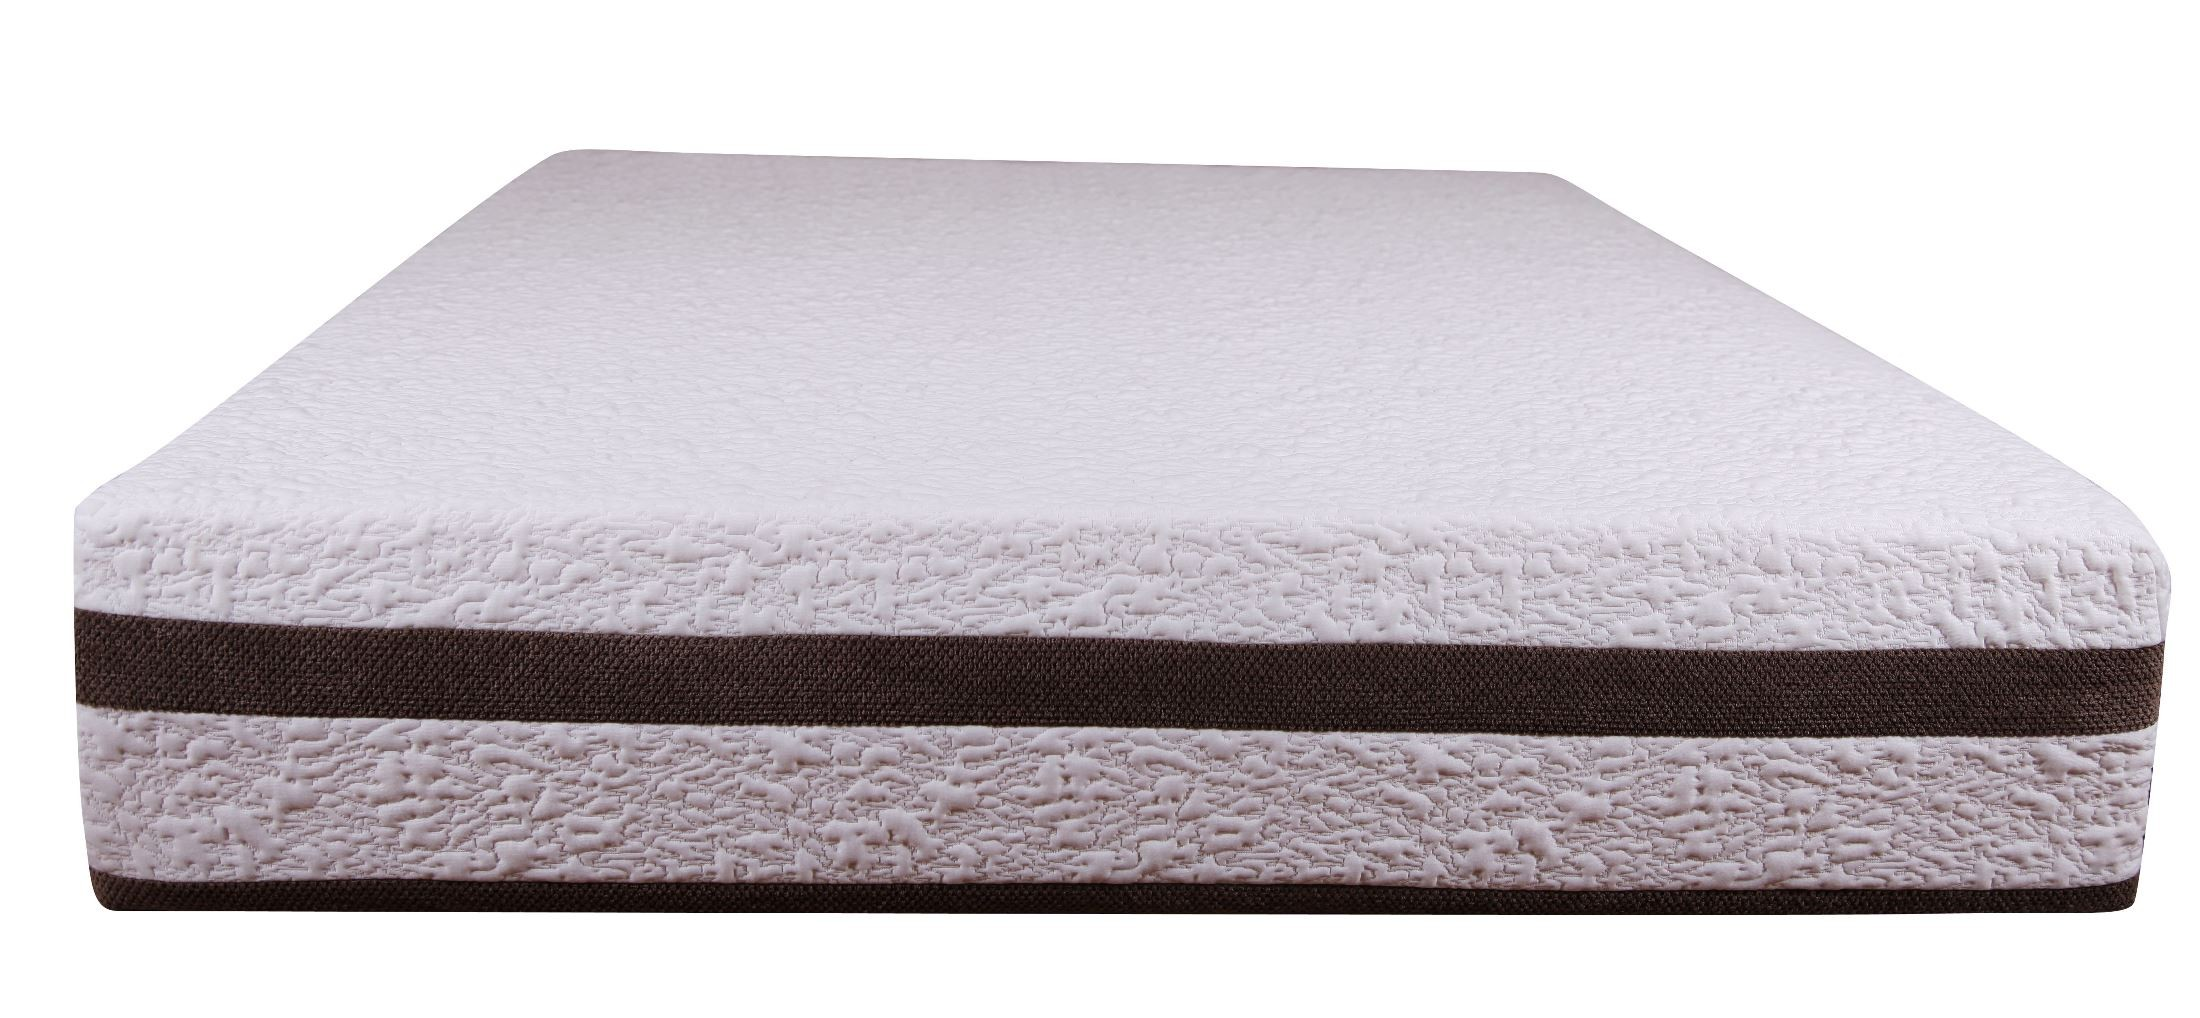 Nova 11 5 memory foam king size mattress from klaussner novakkmat coleman furniture Memory foam king size mattress